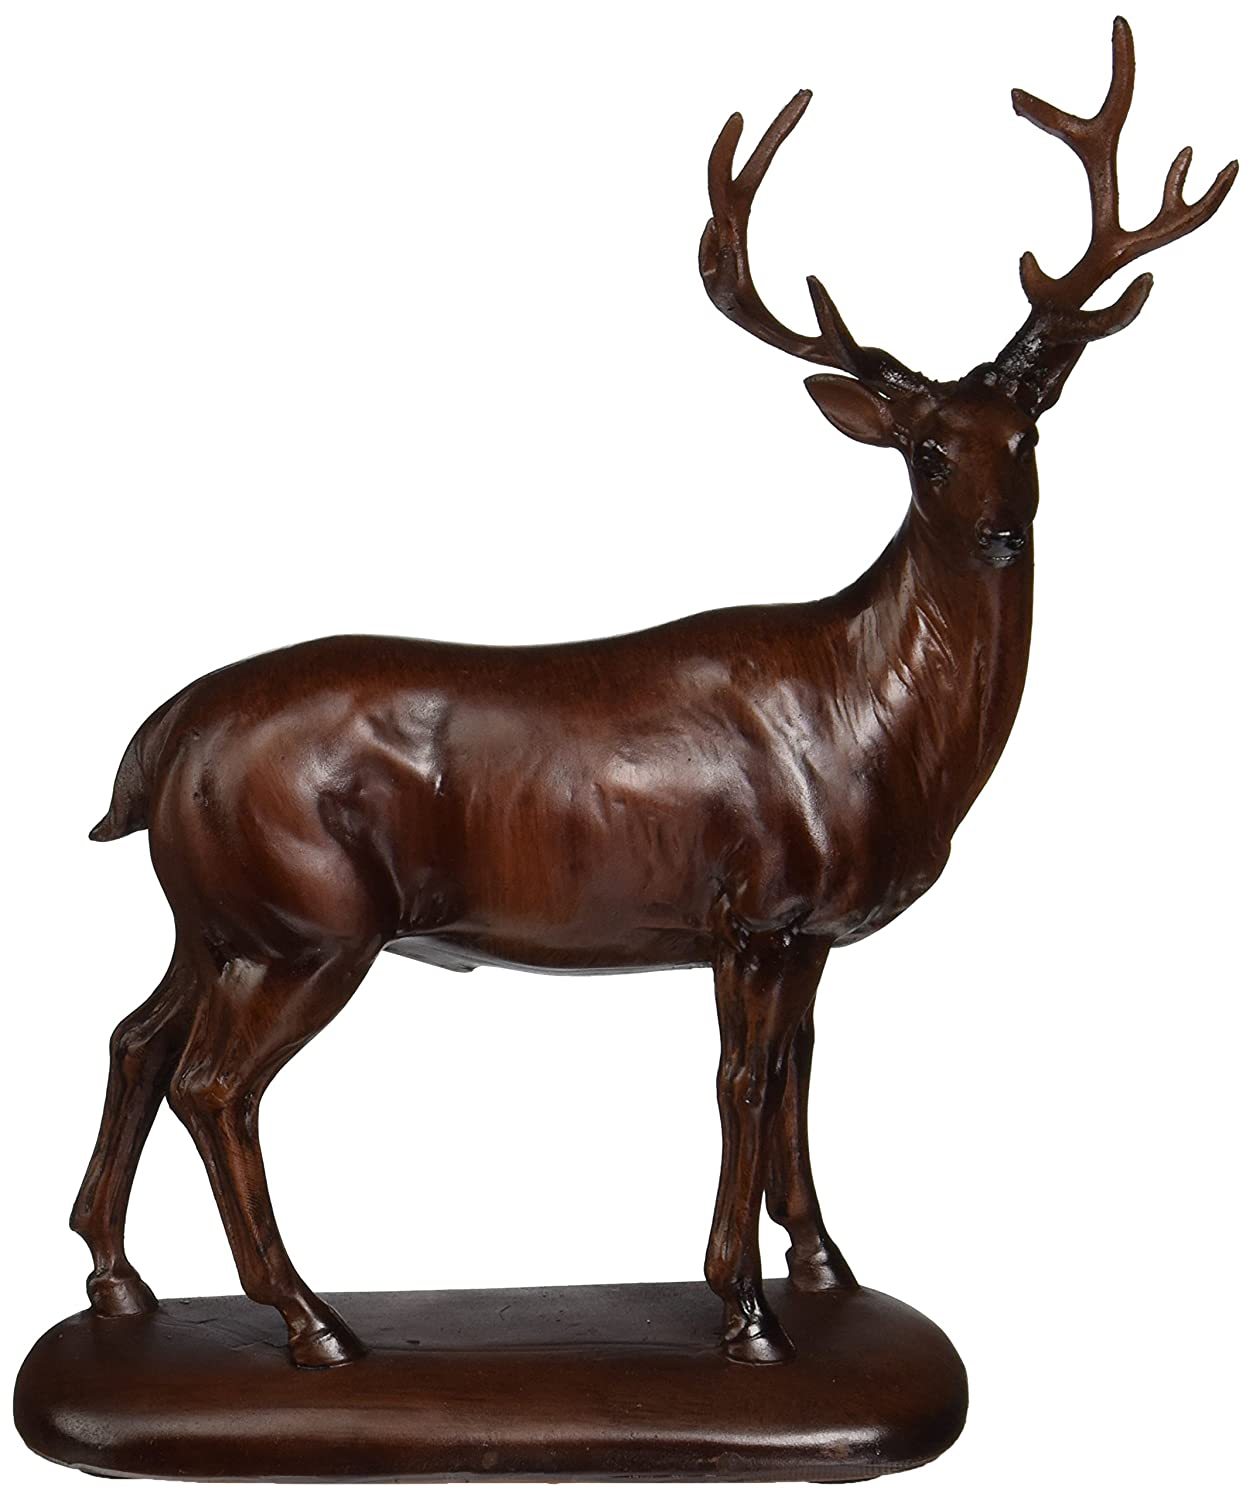 StealStreet SS-UG-PY-2825 Faux Wood Peaceful Deer Sculpture Model Figure Figurine Statue Decor